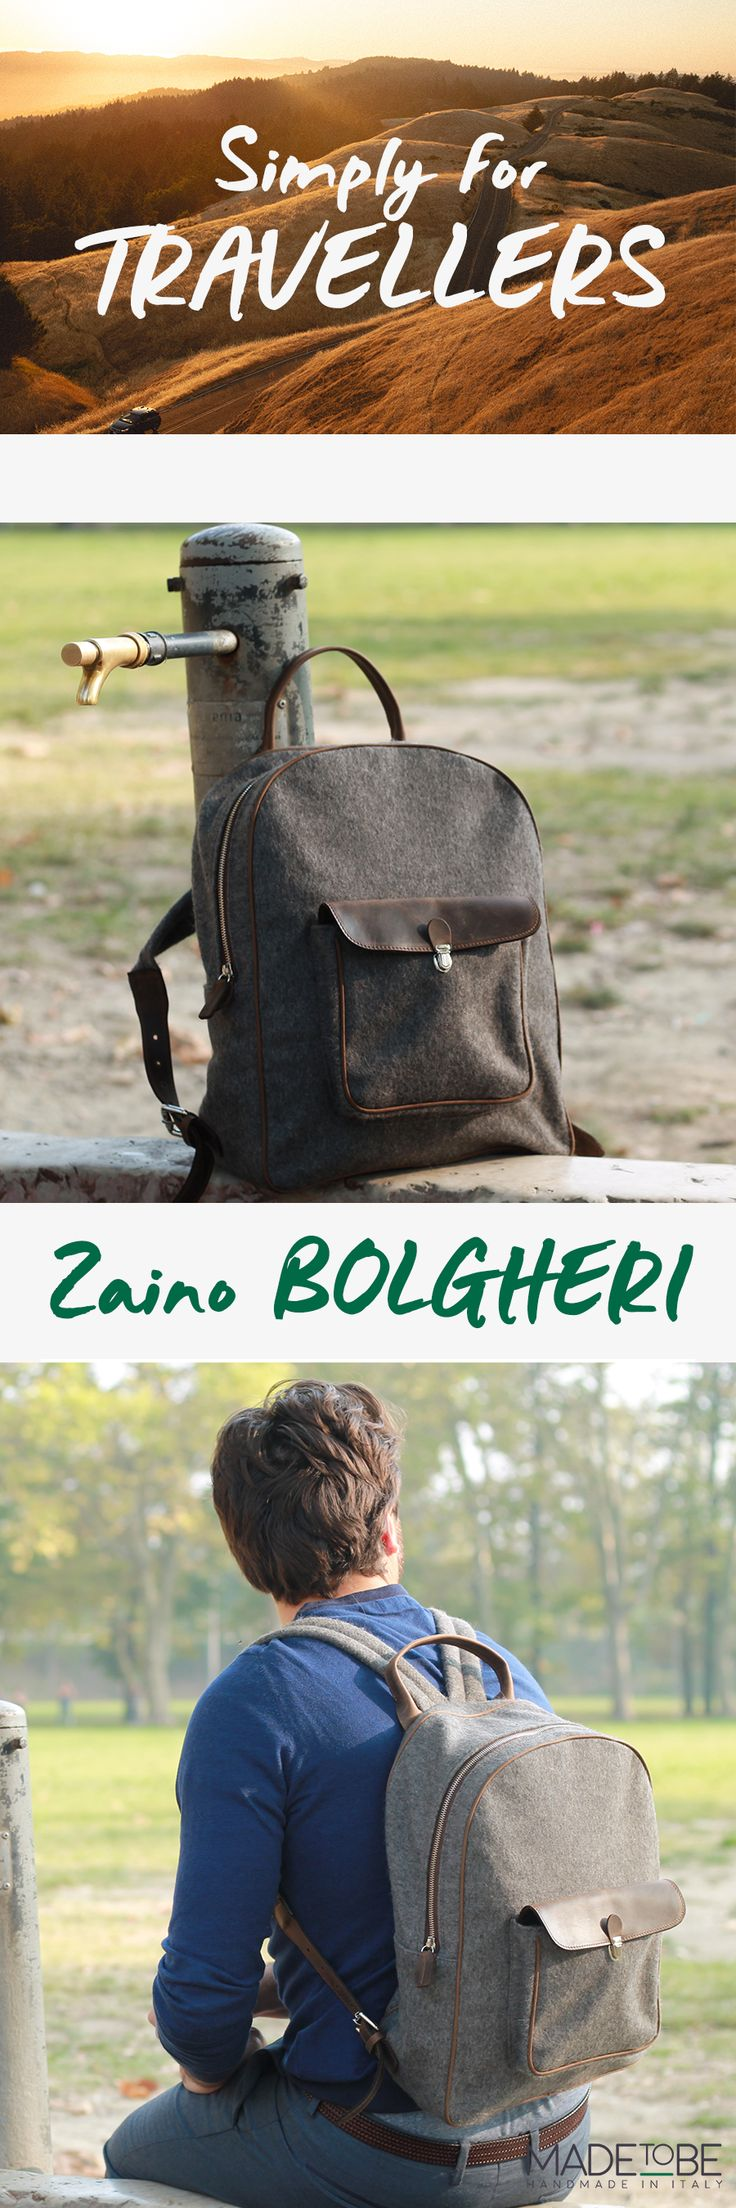 Bolgheri Backpack _ Simply for Travellers by Made To Be